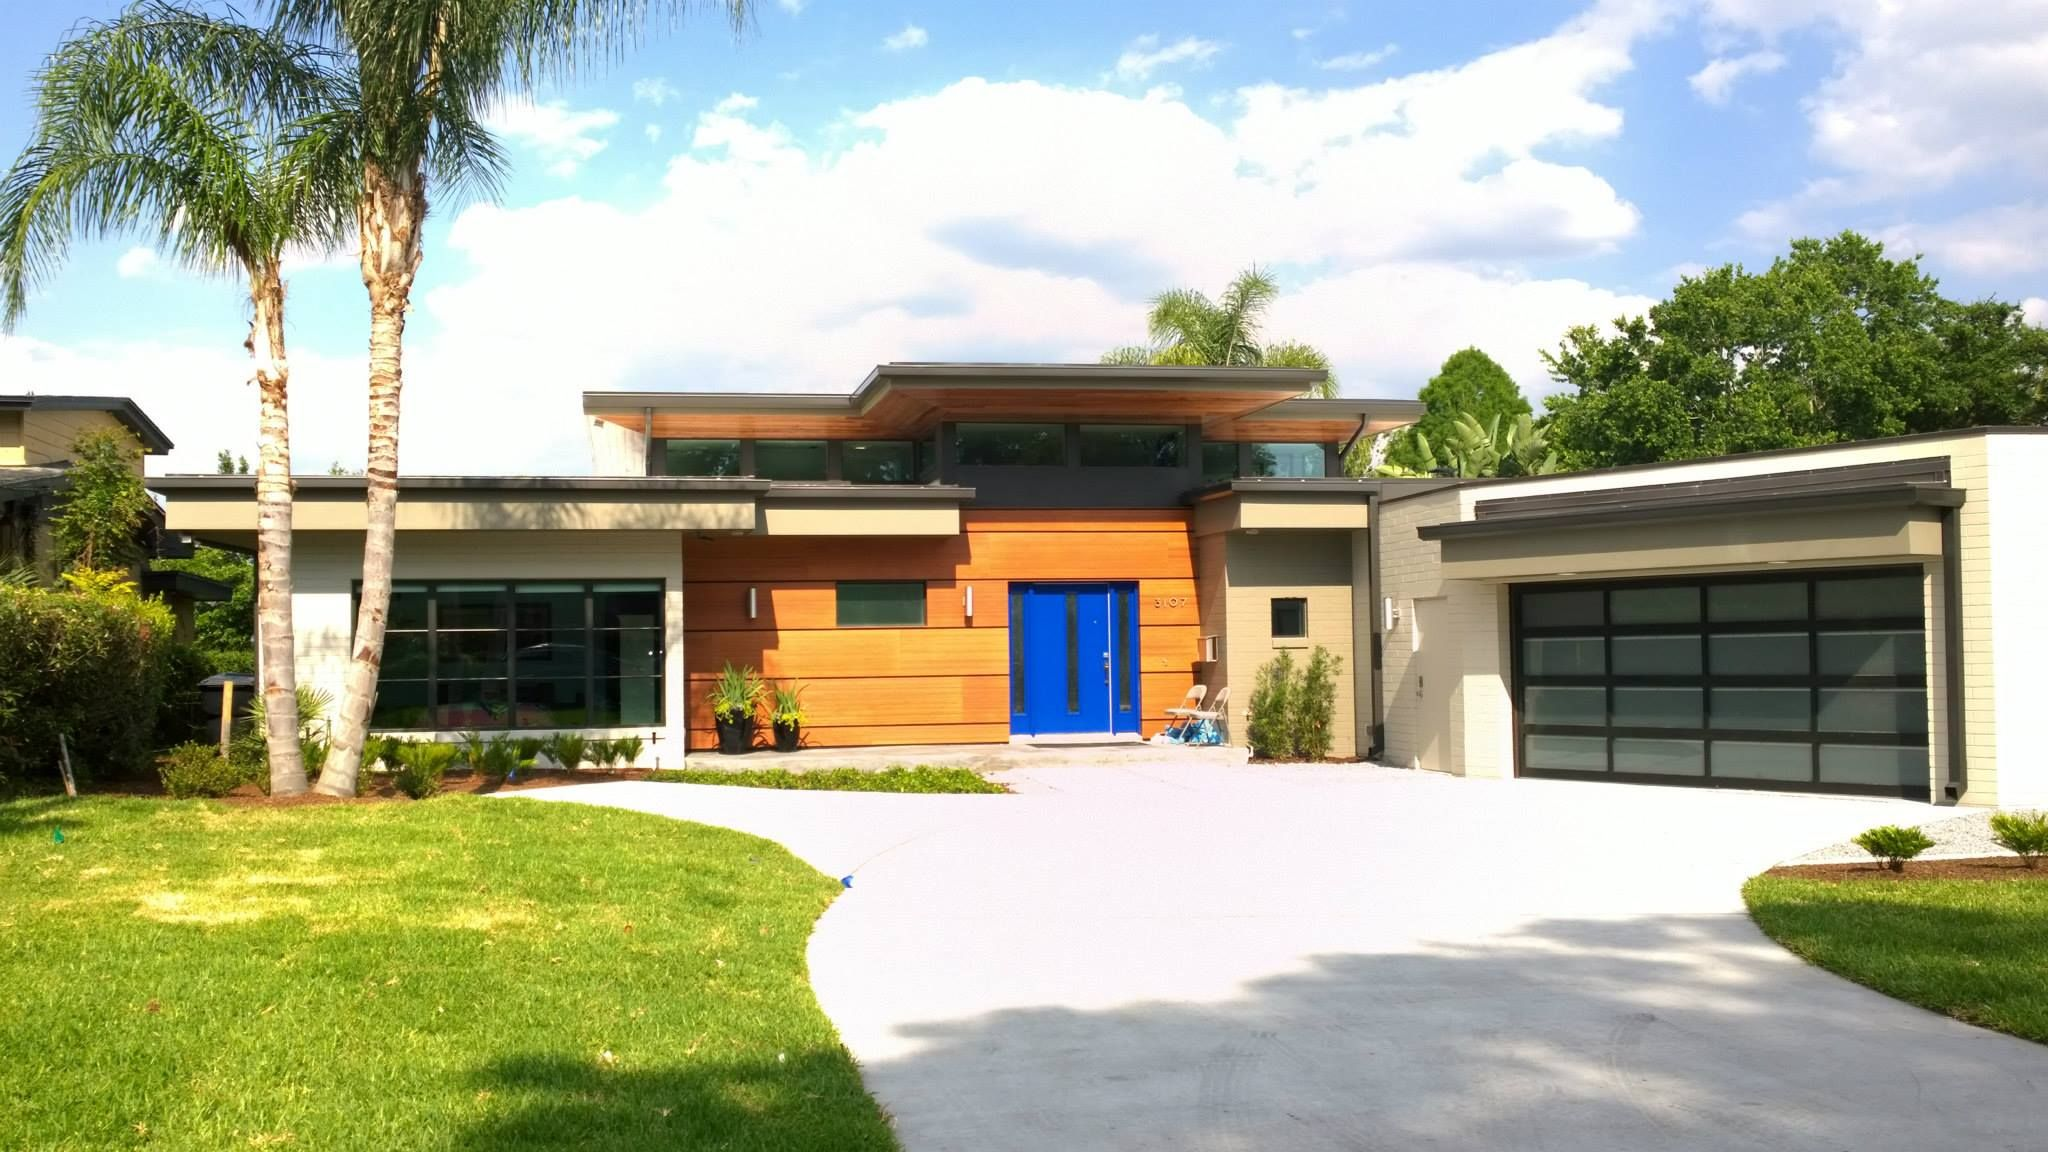 Street View Of A Mid Century Modern Renovation In Orlando, Florida.